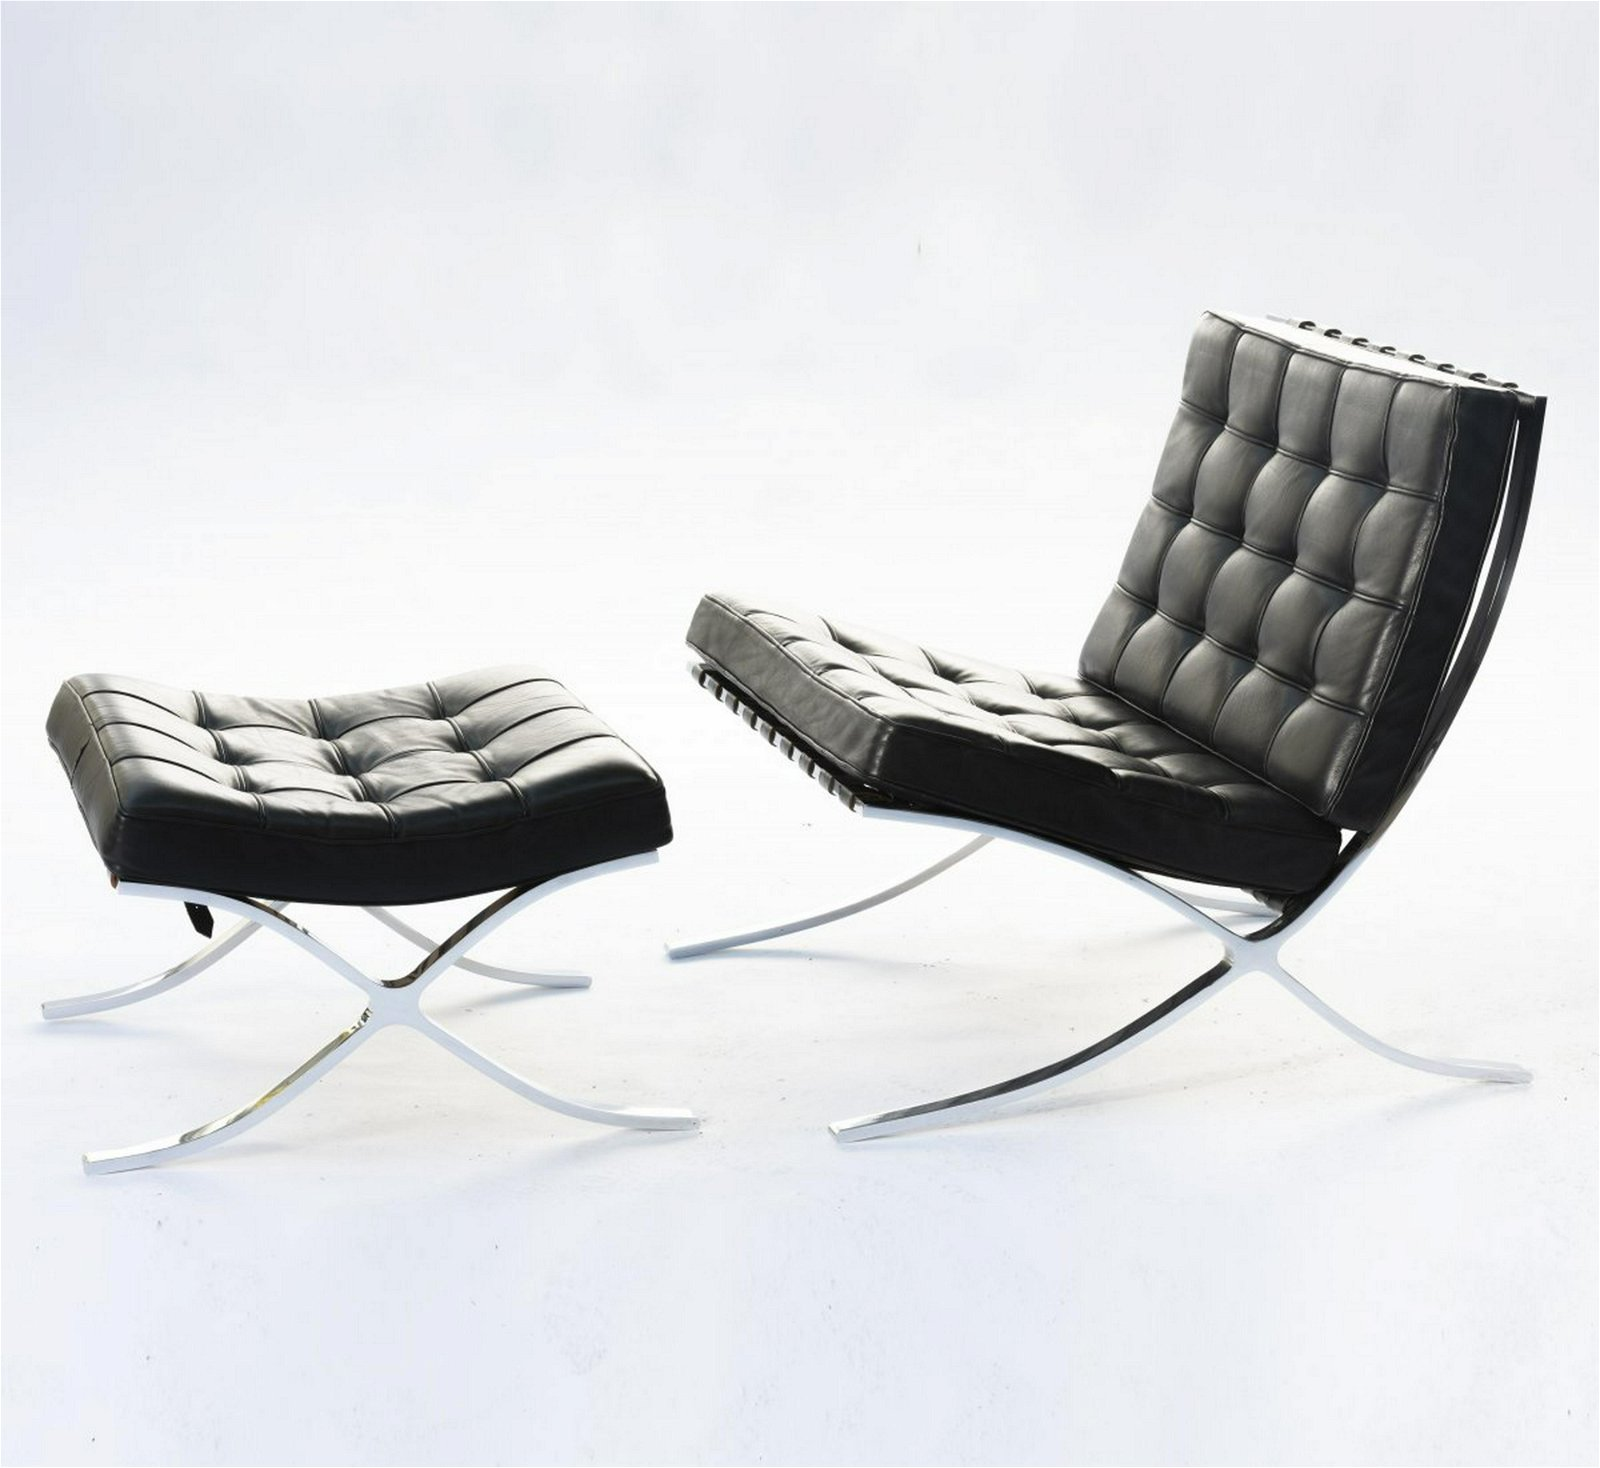 Mies van der Rohe, 'Barcelona' chair and stool